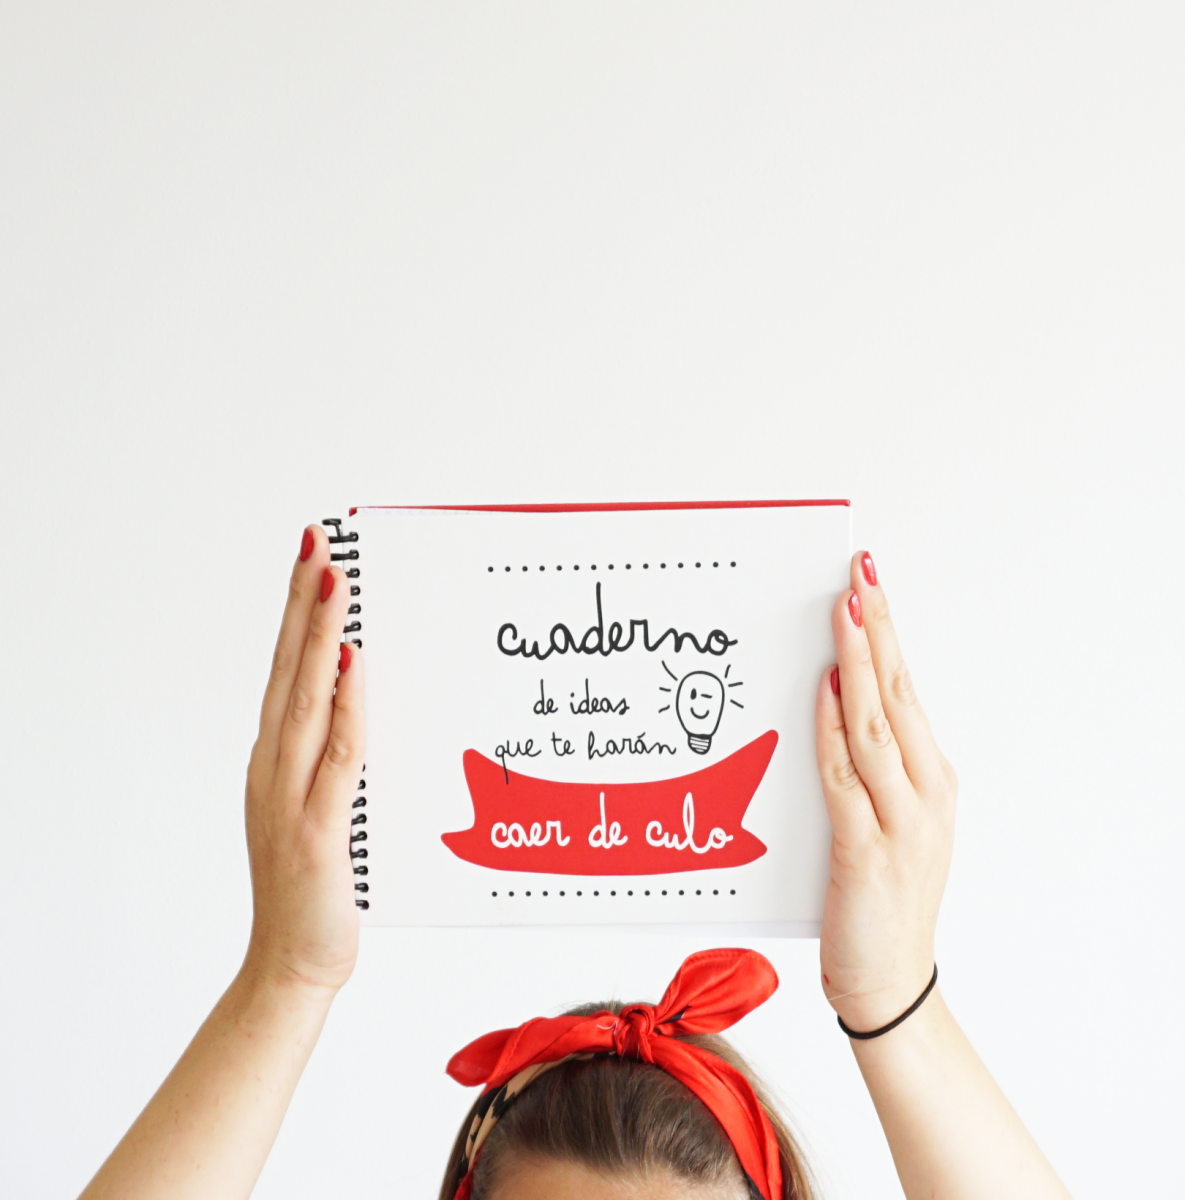 Cuaderno Ideas